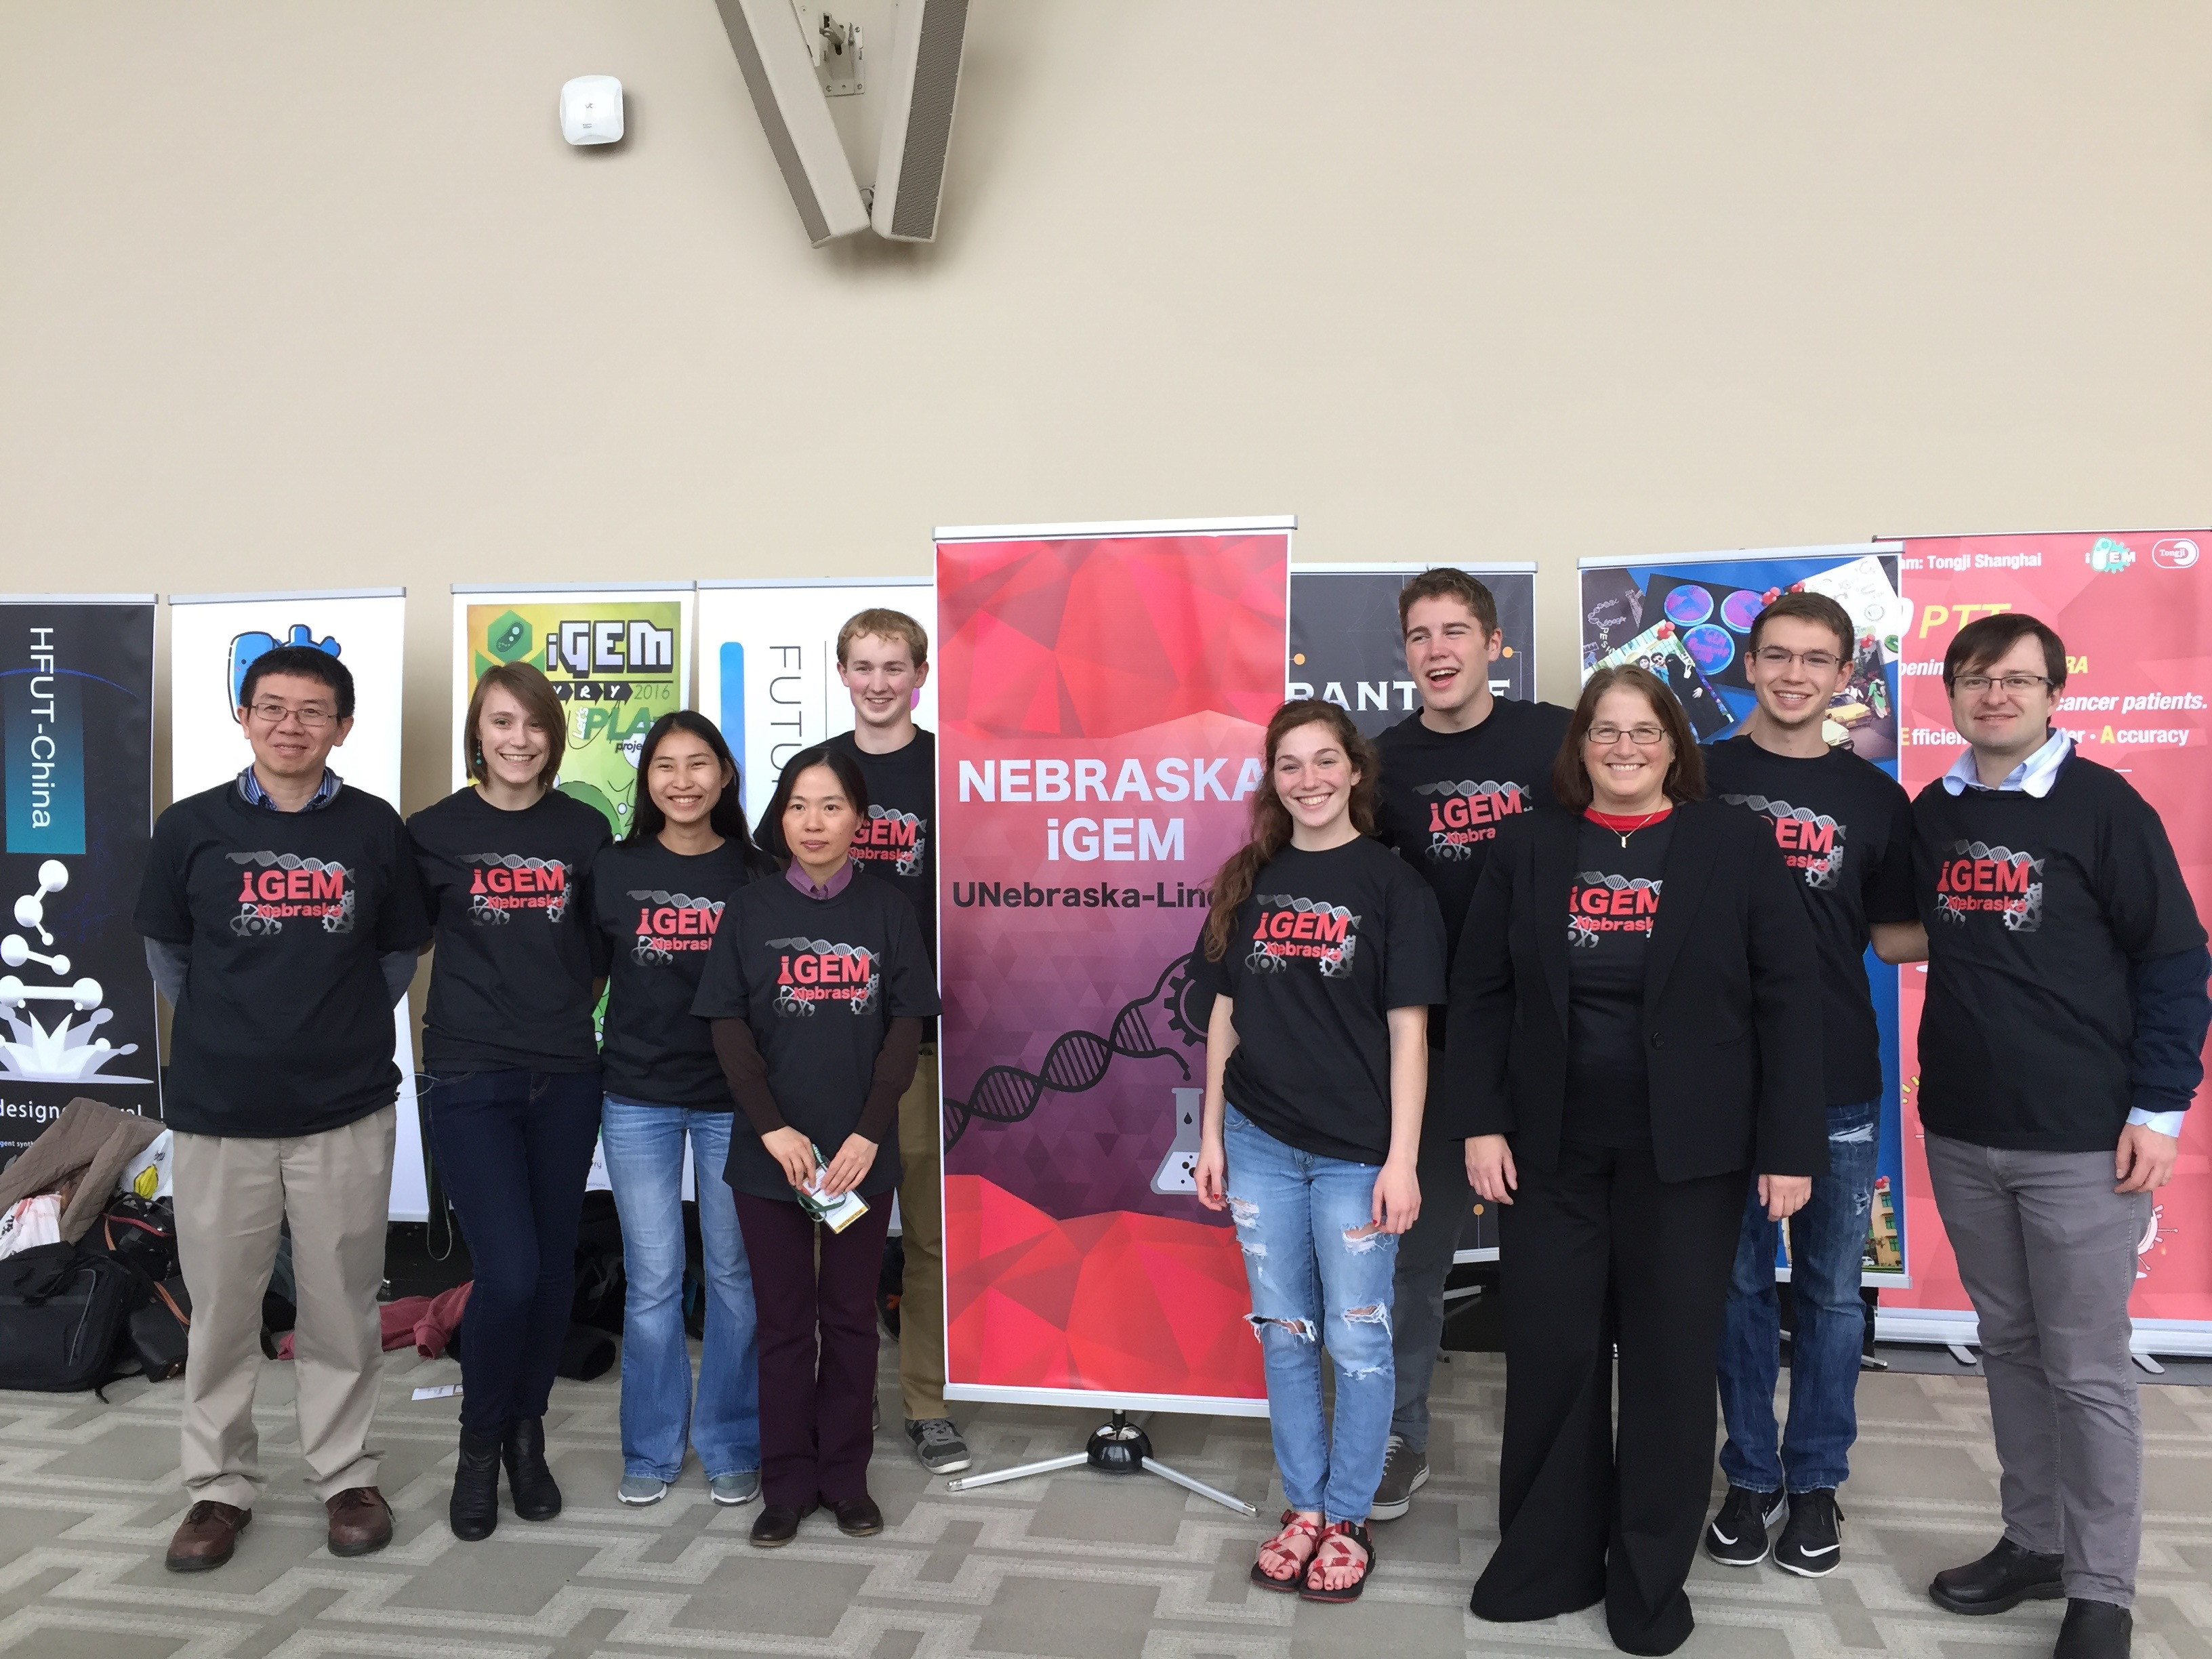 The UNL iGEM team was awarded a silver medal at the International iGEM Competition in Boston.